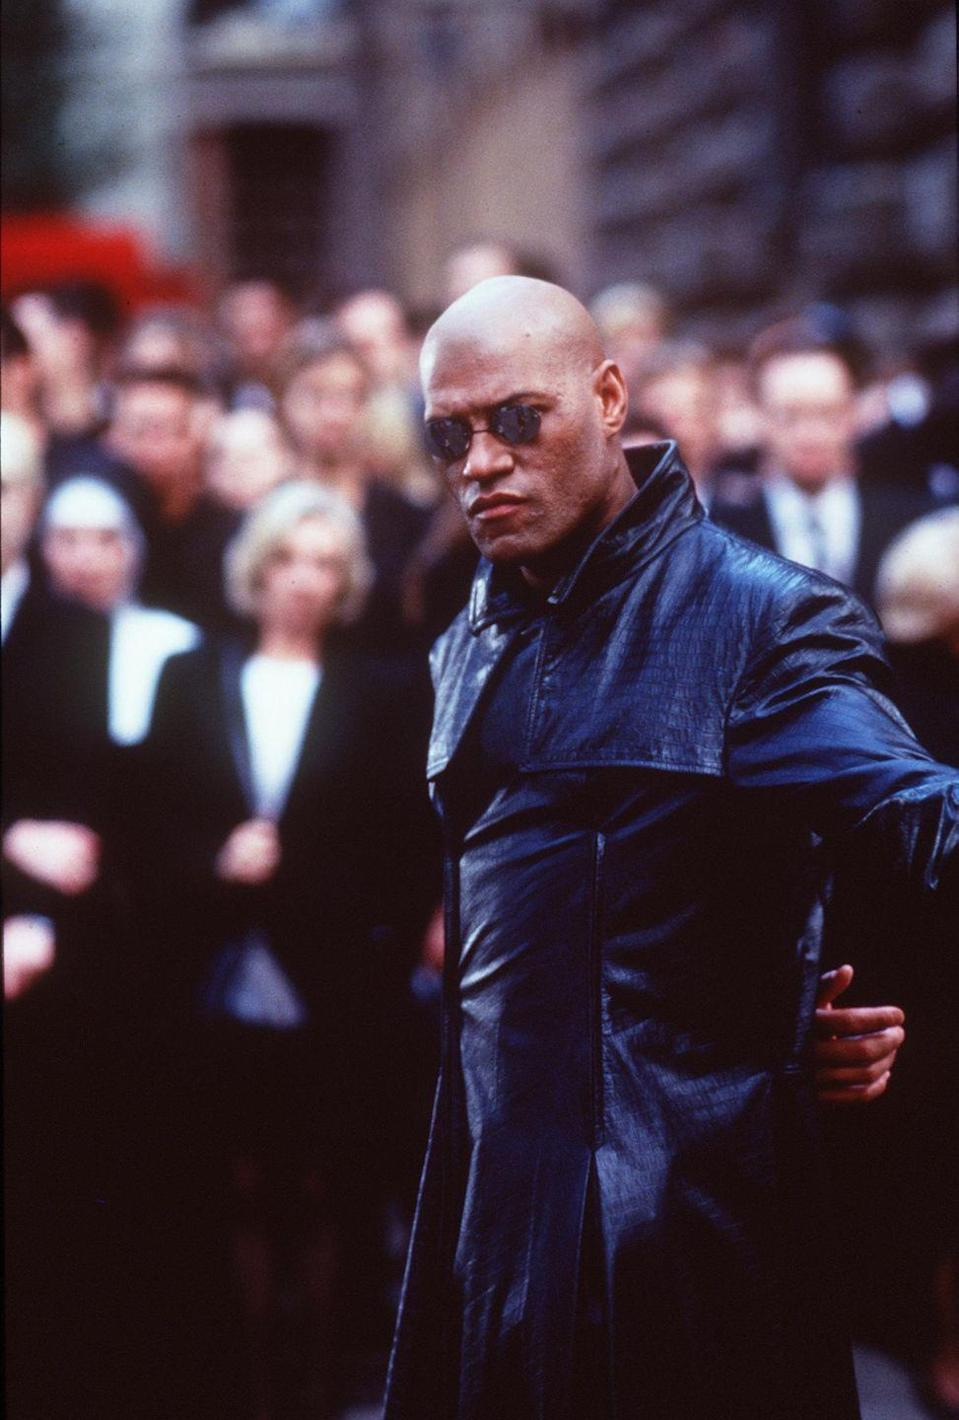 <p>A 1999 blockbuster movie, <em>The Matrix </em>is arguably what made the black trench coat so popular. So if you're looking for an easy costume for the office, you can't go wrong with a pair of round wire sunglasses and a full-length leather trench.</p>